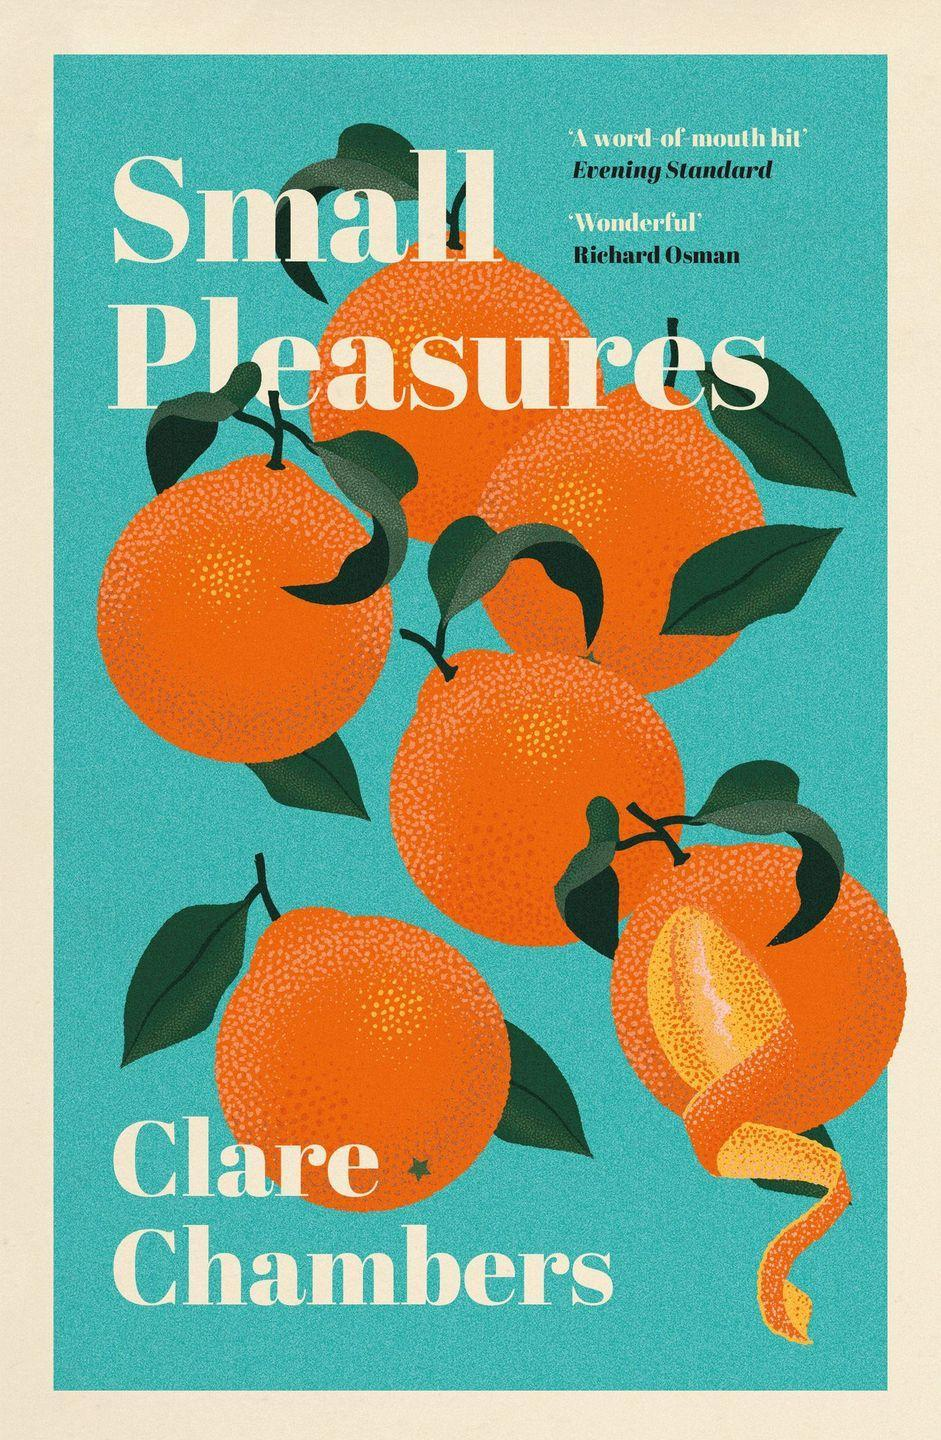 """<p>A captivating tale of friendship, love, happiness and the unravelling of a mystery, Small Pleasures is the first work of fiction in 10 years from the acclaimed novelist.<br><br>""""Small Pleasures by Claire Chambers is a story set in the 1950s<br>about a local journalist who covers the incredible tale of a woman who claims to have been a virgin when she gave birth to her daughter."""" - Elizabeth Day</p><p><a class=""""link rapid-noclick-resp"""" href=""""https://www.amazon.co.uk/Small-Pleasures-Clare-Chambers/dp/1474613888/ref=sr_1_1?adgrpid=103687175253&dchild=1&gclid=Cj0KCQiAnKeCBhDPARIsAFDTLTI9C5pXjarxjciD_PkB_CqQgHW5etkrnUYHYjZsFxQgRATTFsS0wOMaAumSEALw_wcB&hvadid=447157018697&hvdev=c&hvlocphy=9073583&hvnetw=g&hvqmt=e&hvrand=5623113584361689175&hvtargid=kwd-922416933528&hydadcr=11713_1842055&keywords=small+pleasures+clare+chambers&qid=1615458442&sr=8-1&tag=hearstuk-yahoo-21&ascsubtag=%5Bartid%7C1927.g.35797924%5Bsrc%7Cyahoo-uk"""" rel=""""nofollow noopener"""" target=""""_blank"""" data-ylk=""""slk:SHOP NOW"""">SHOP NOW</a></p>"""